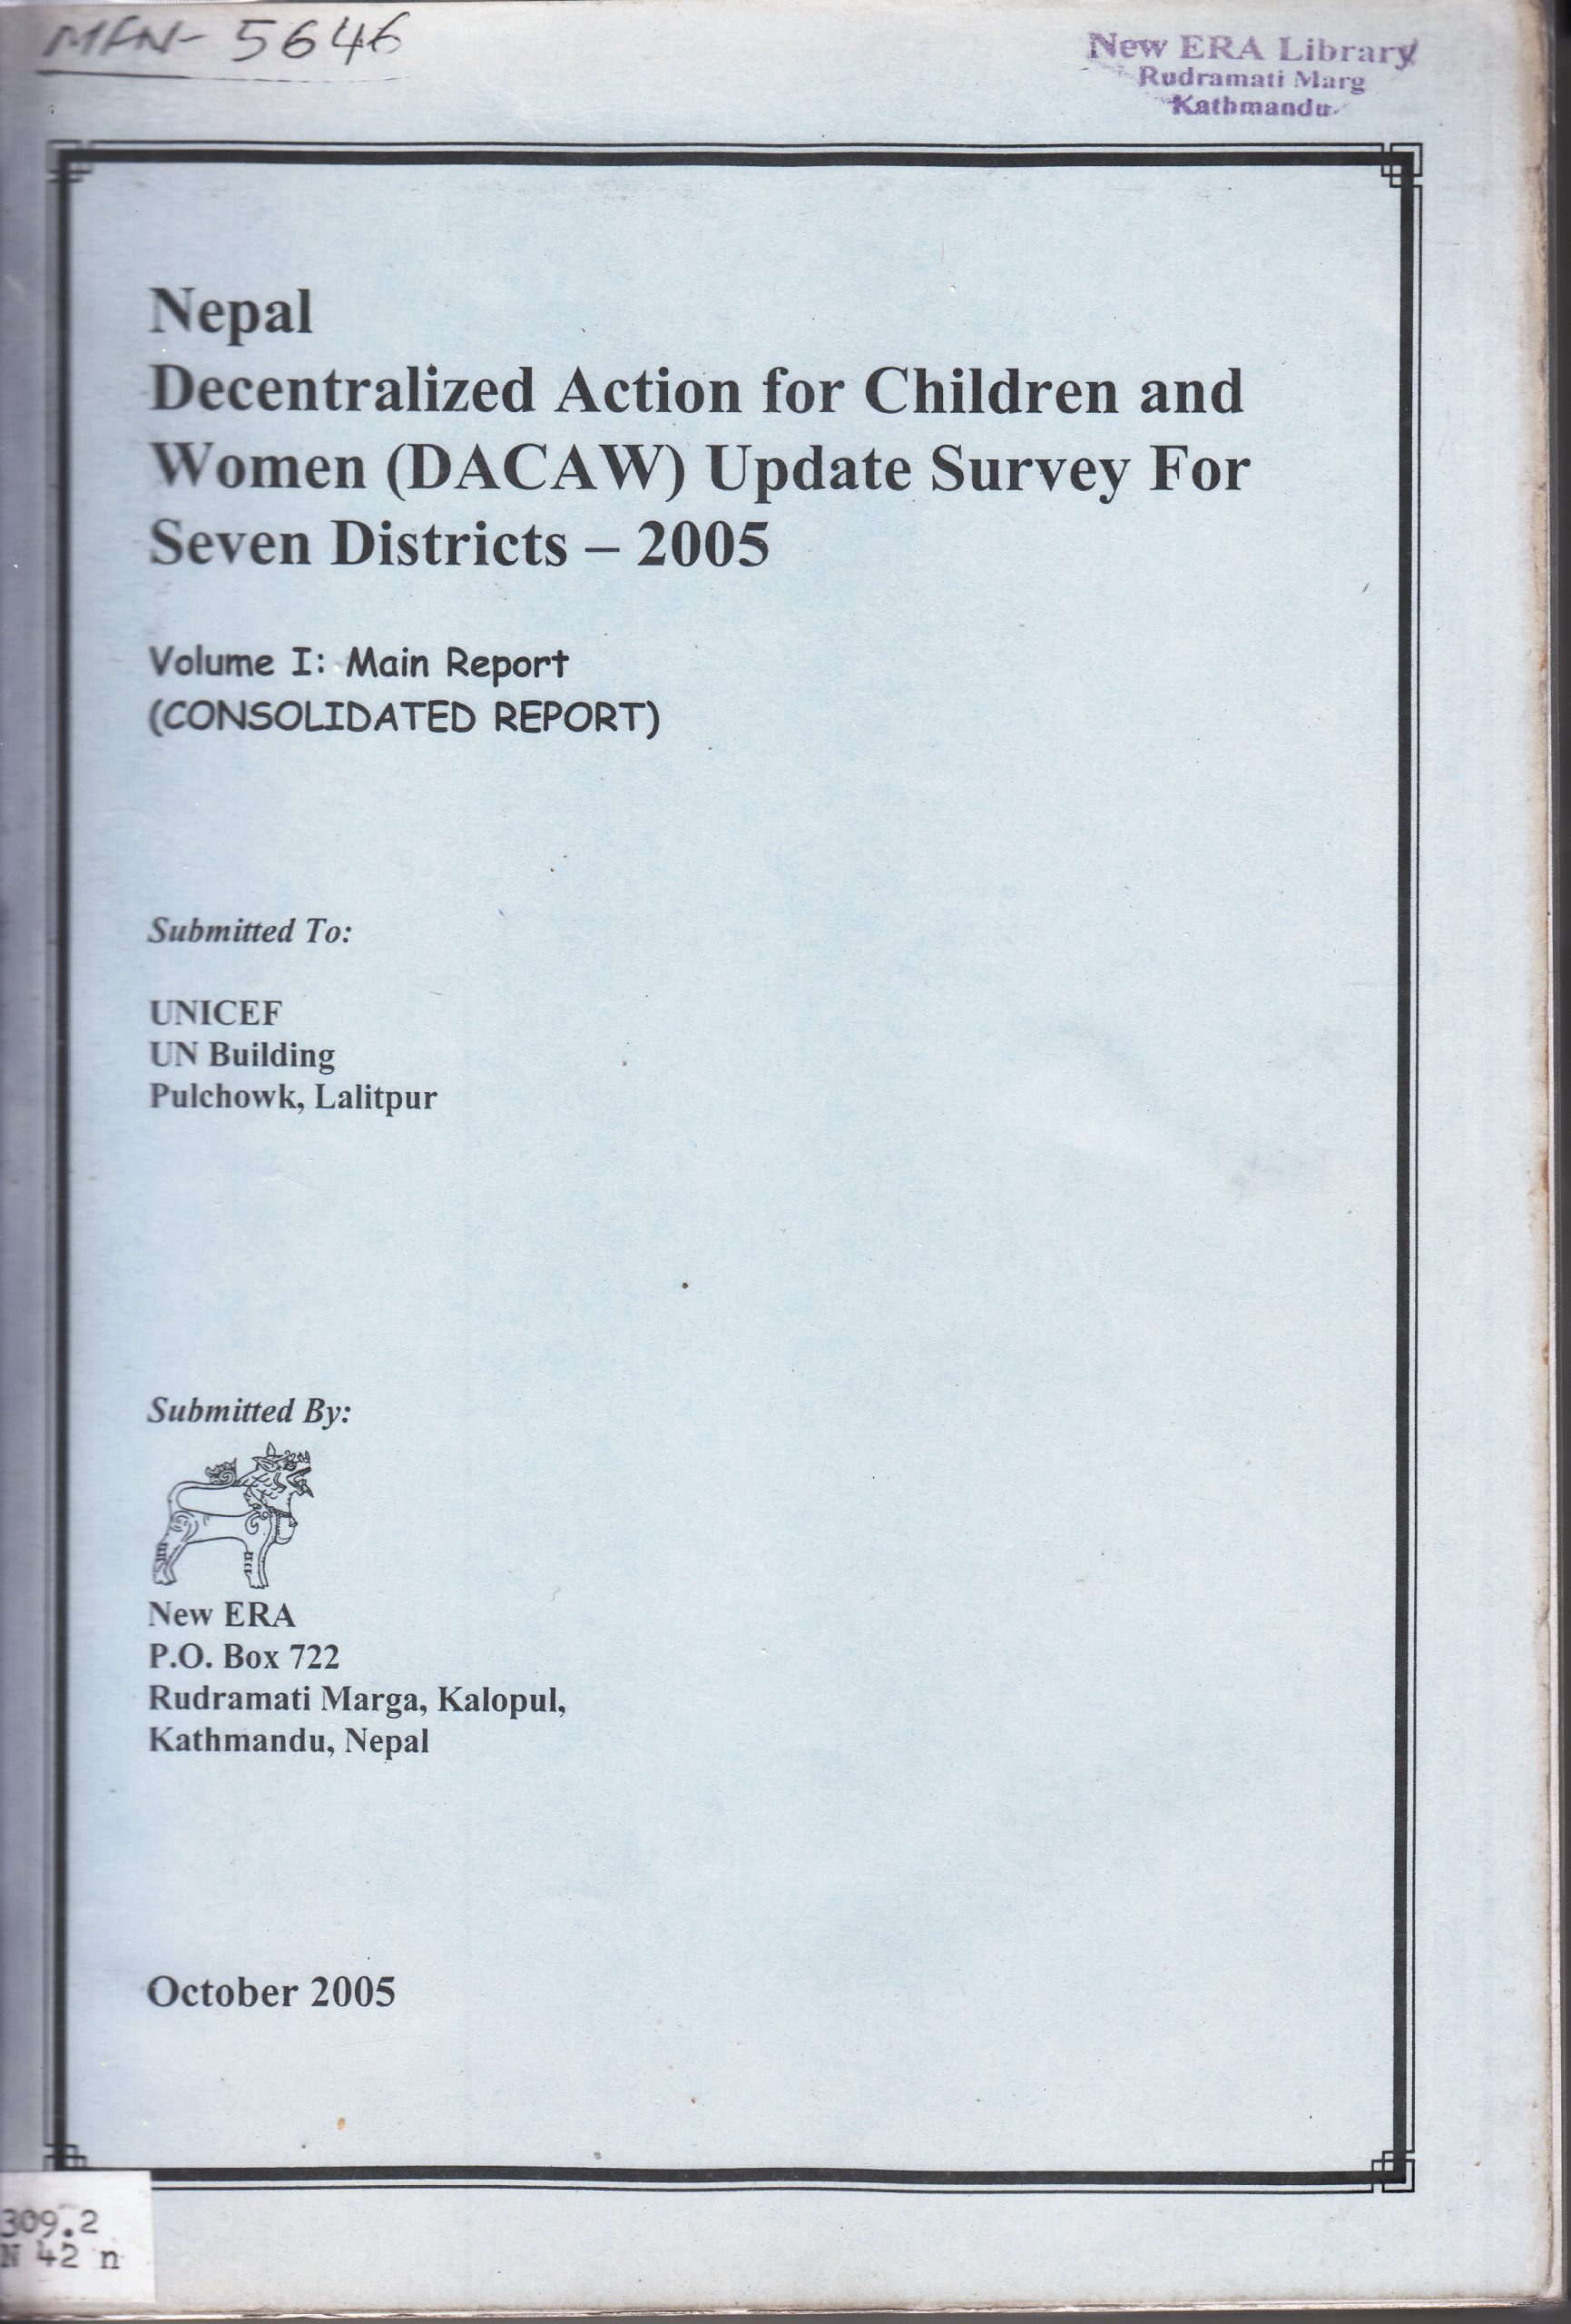 Nepal Decentralized Action for Children and Women (DACAW) Update Survey for Seven Districts 2005 – Consolidated Report